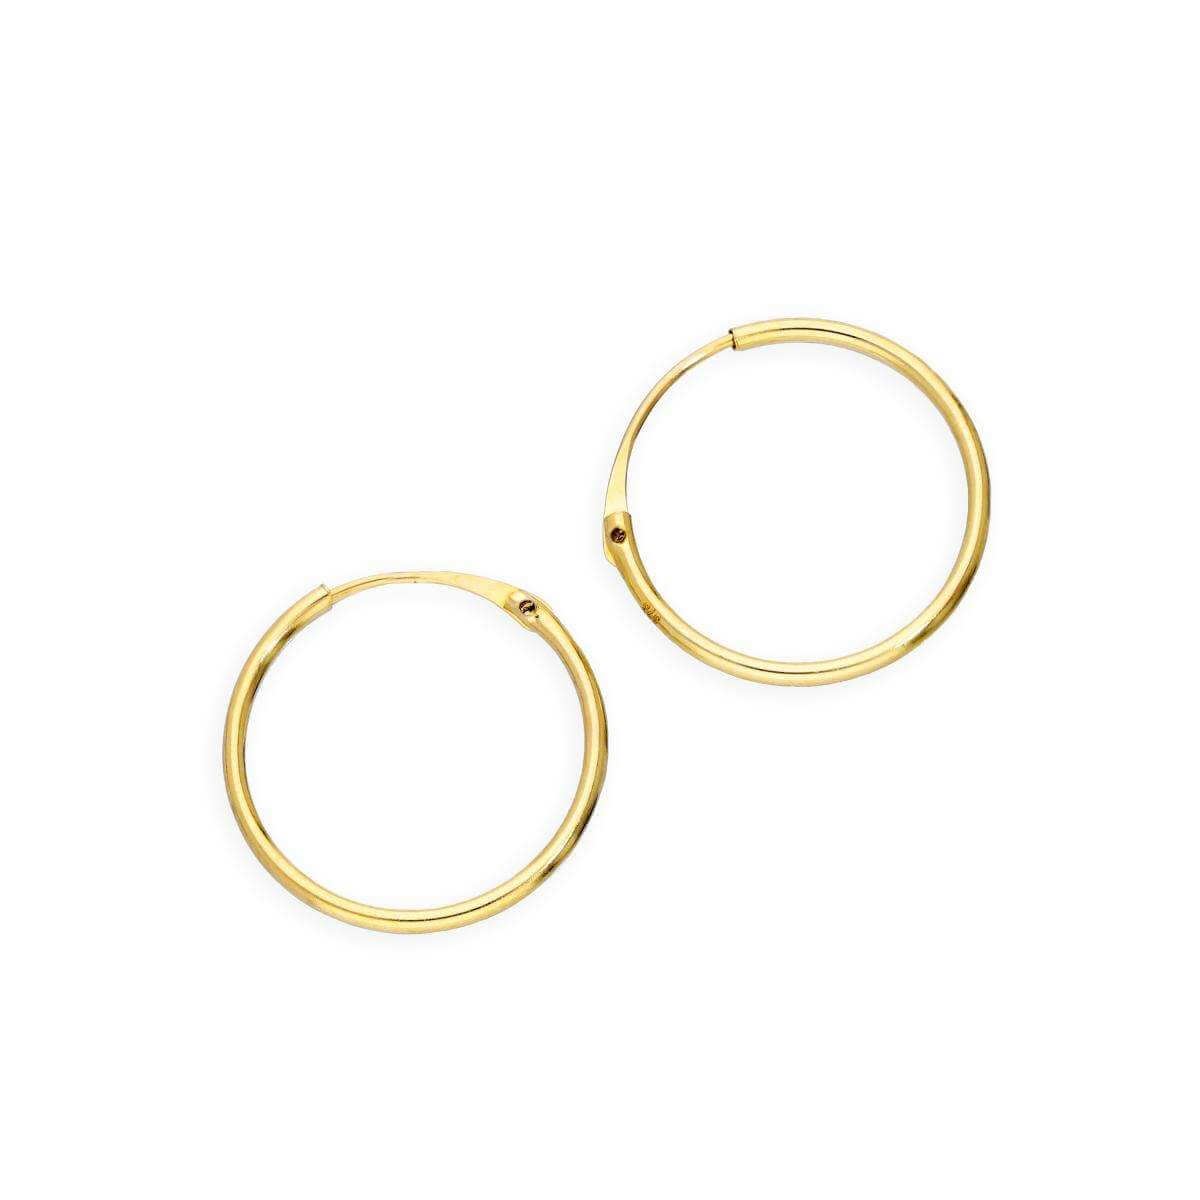 9ct Gold 0.8mm Tube Hoop Earrings 12mm